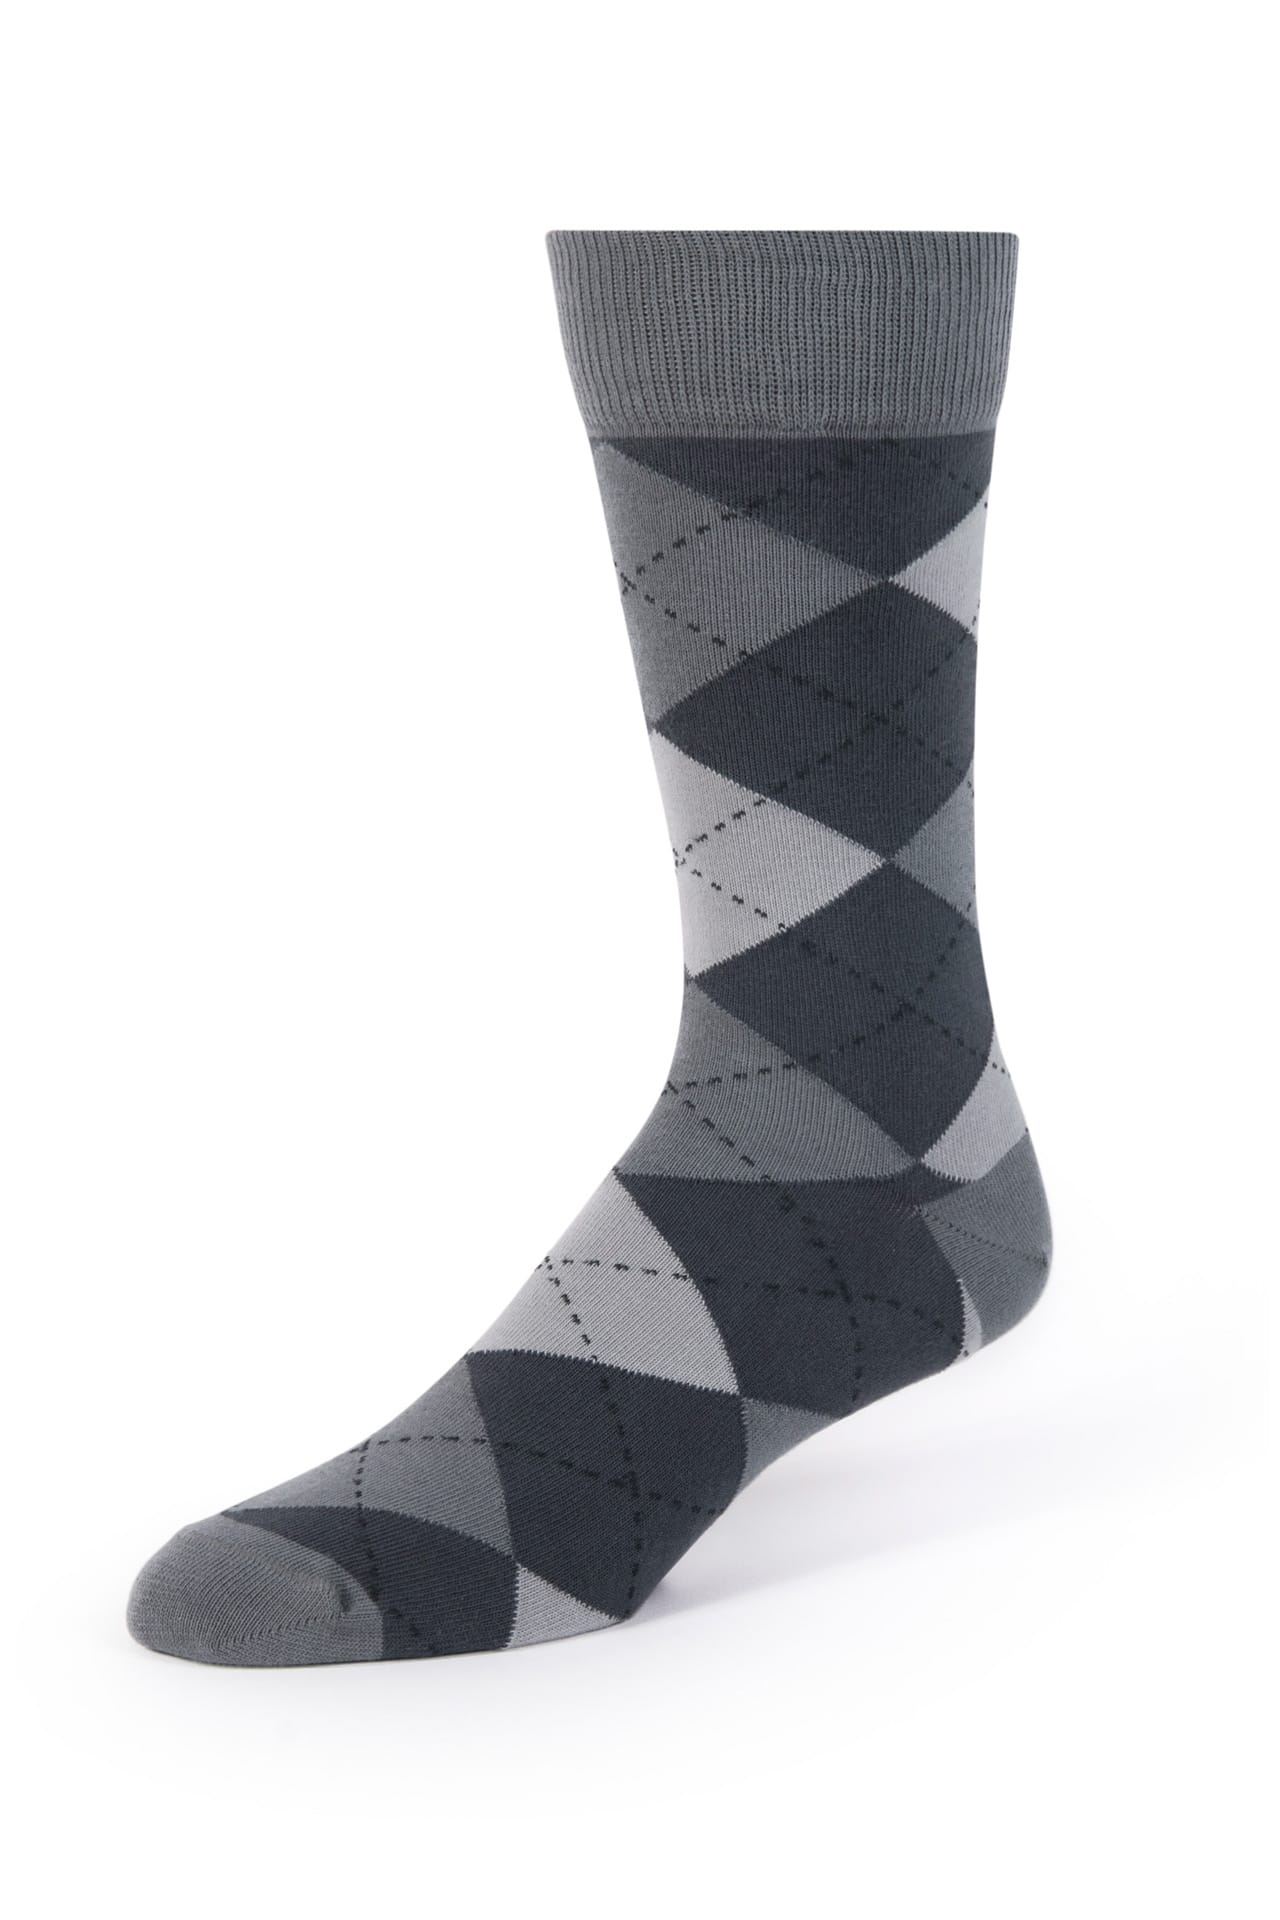 Dark Gray Argyle Socks Jim S Formal Wear